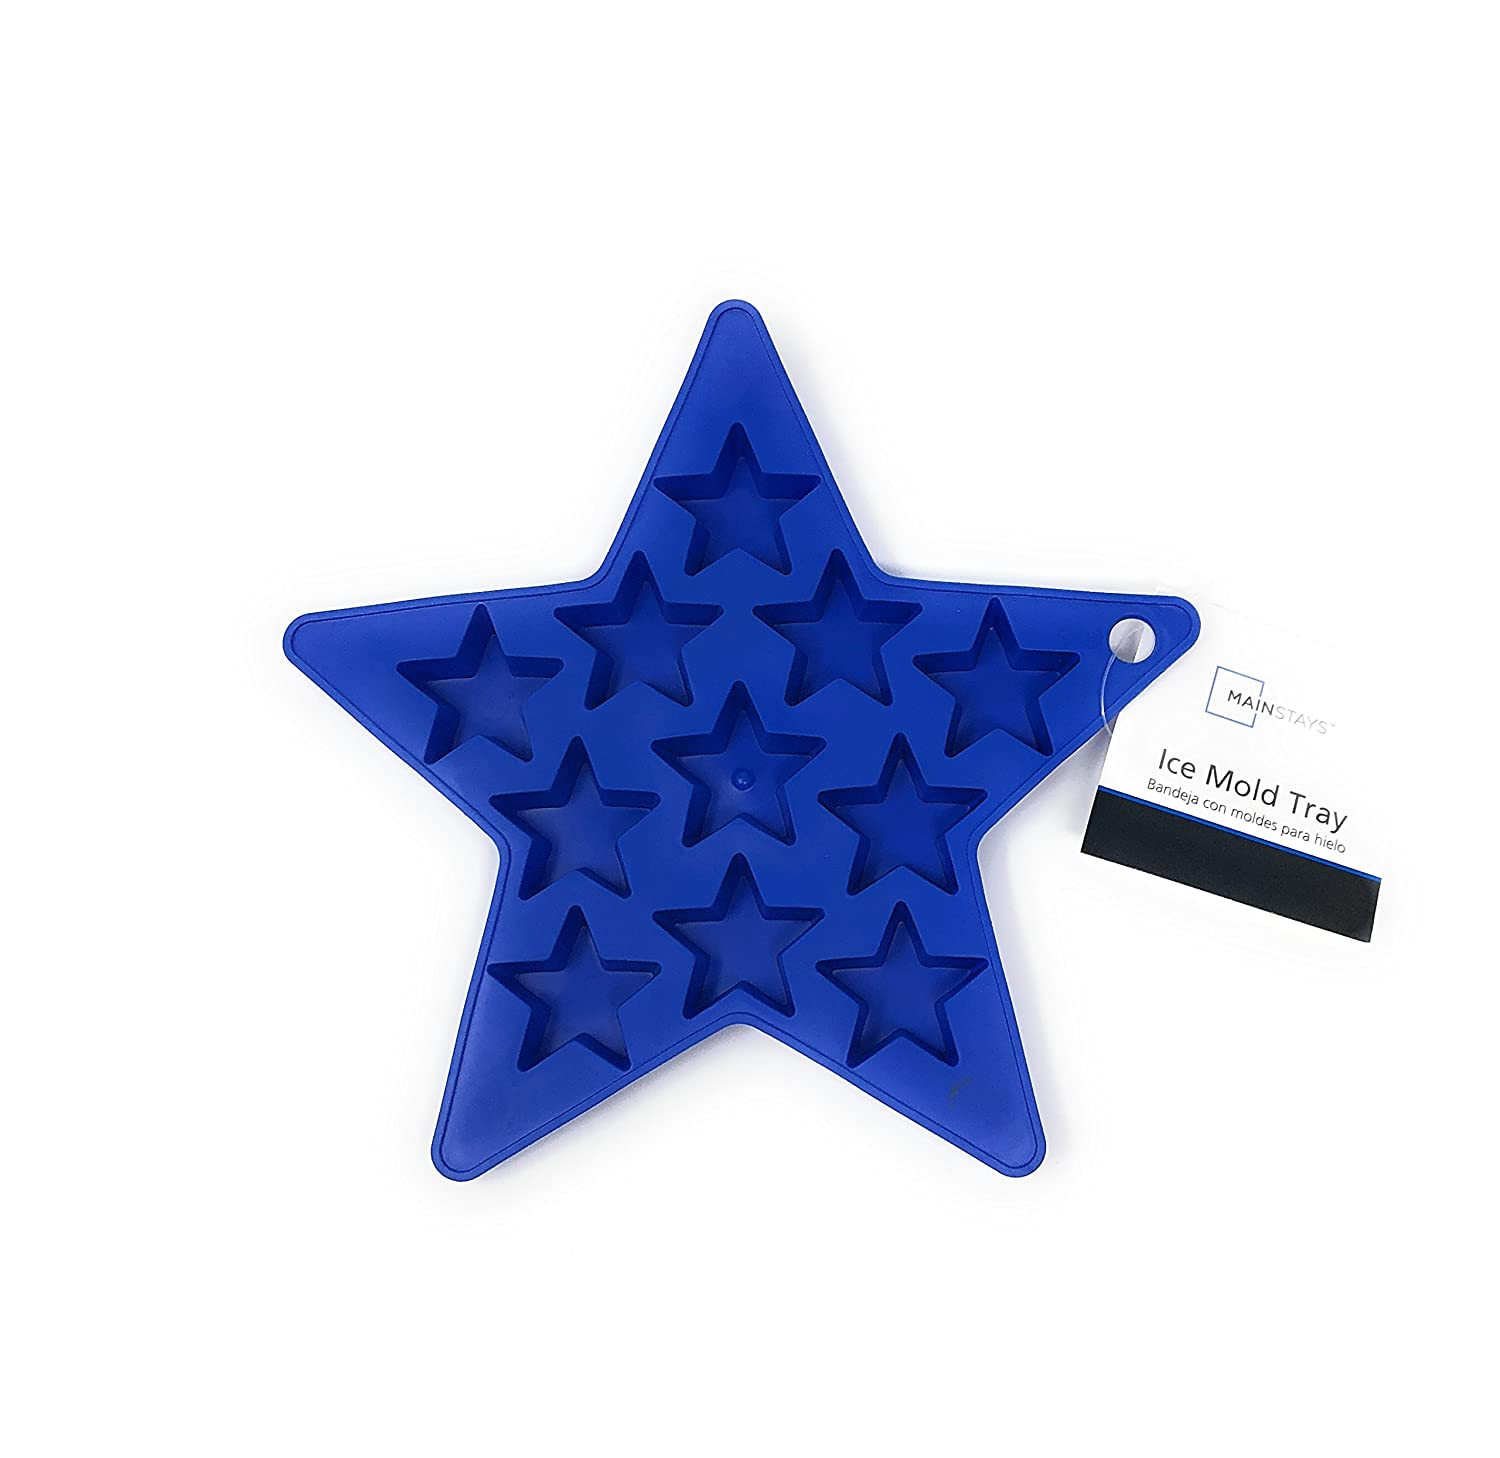 Amazon.com: Silcone Ice Cube Shaped Mold Tray (Cobalt Crush Star): Kitchen & Dining